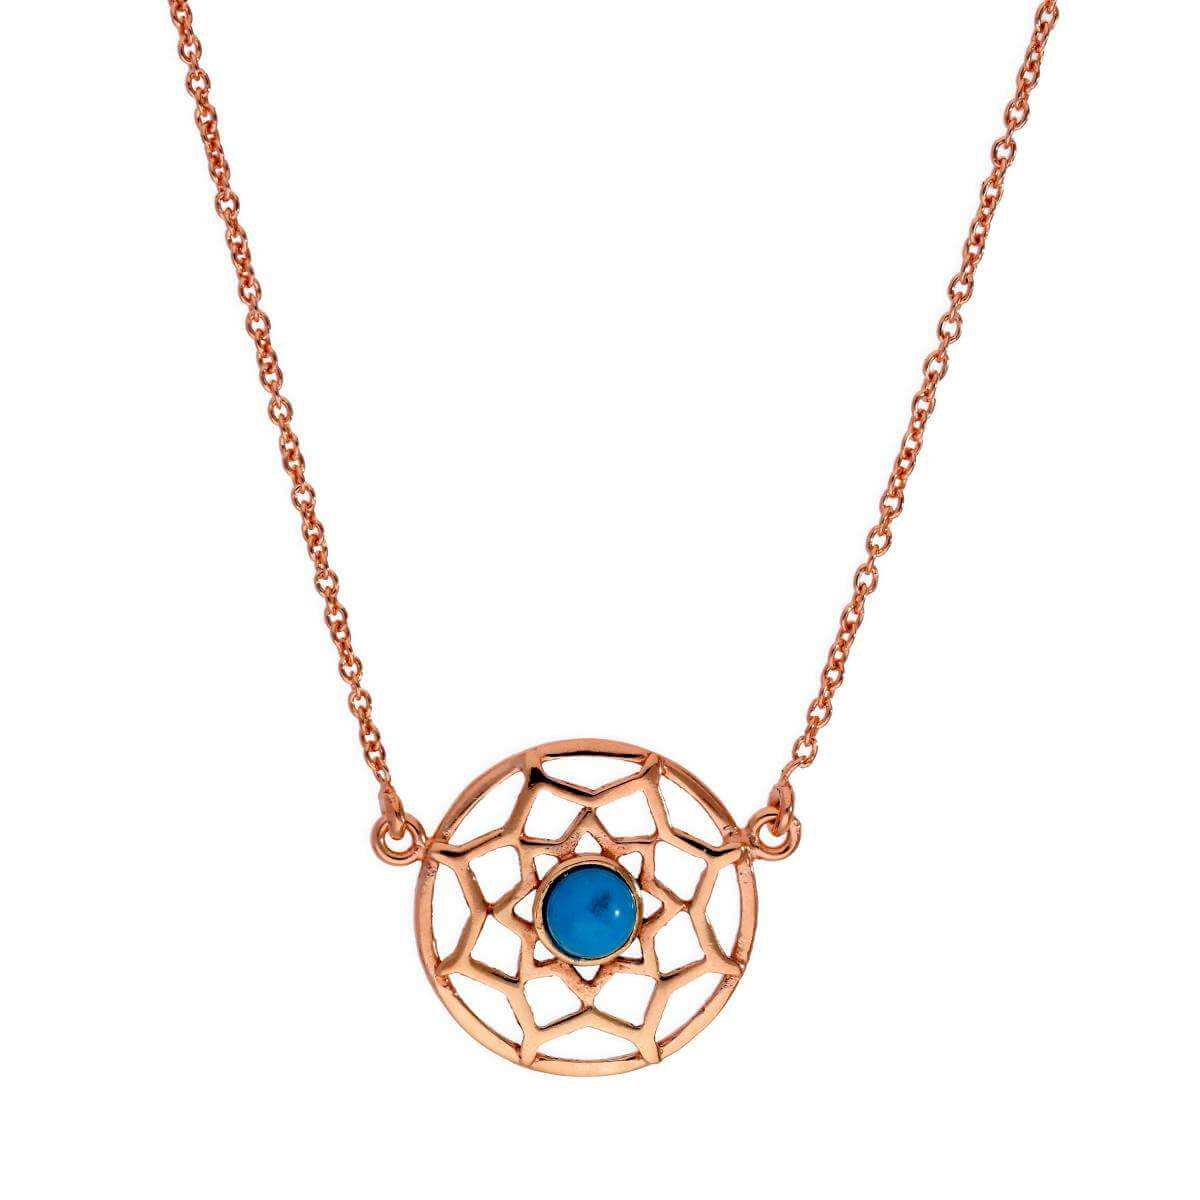 Rose Gold Plated Sterling Silver & Blue Enamel Dreamcatcher Necklace w 18 Inch Chain